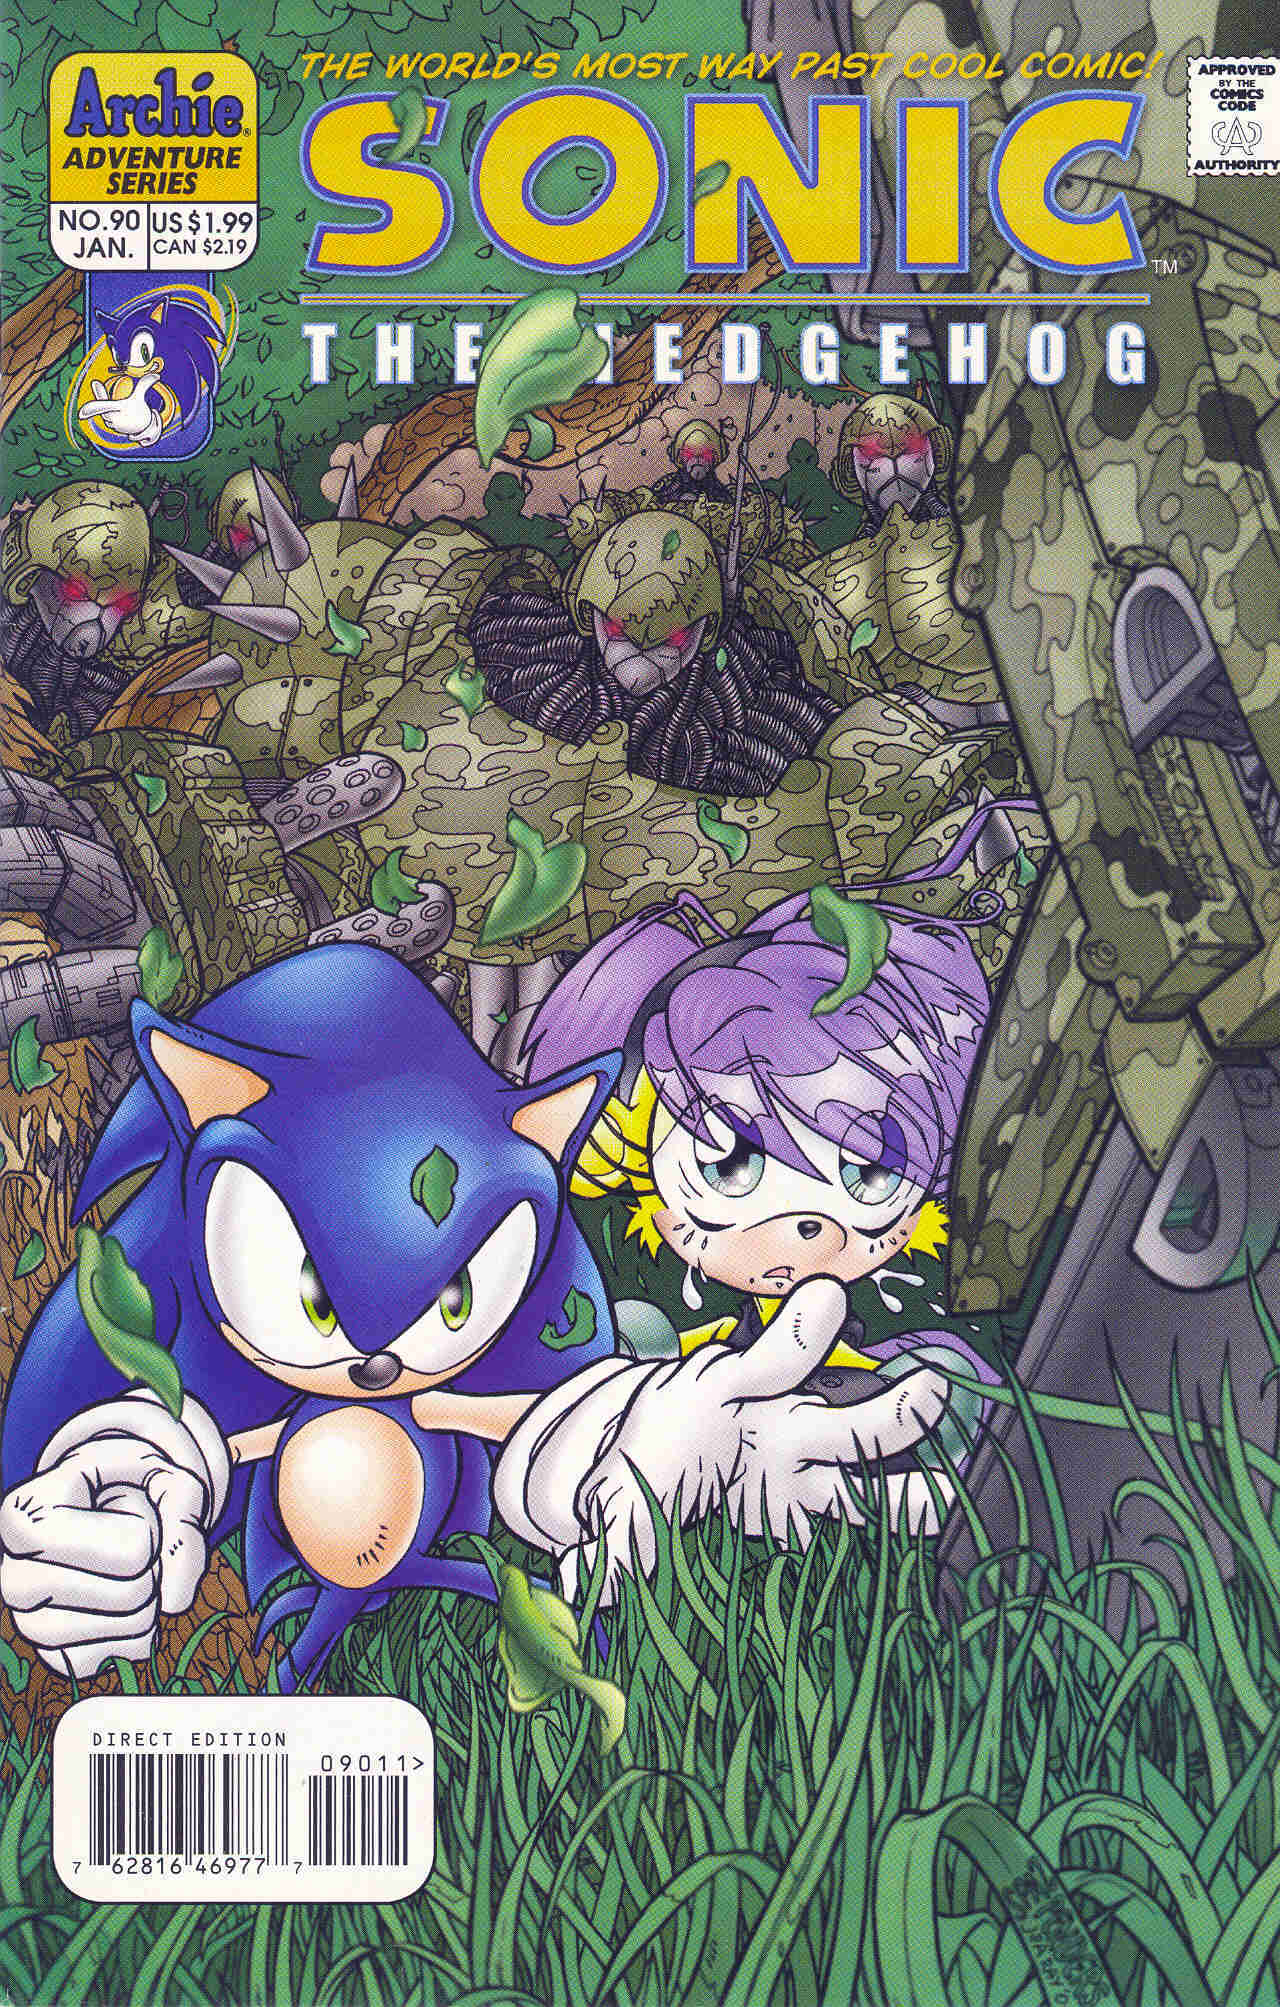 Sonic - Archie Adventure Series January 2001 Cover Page